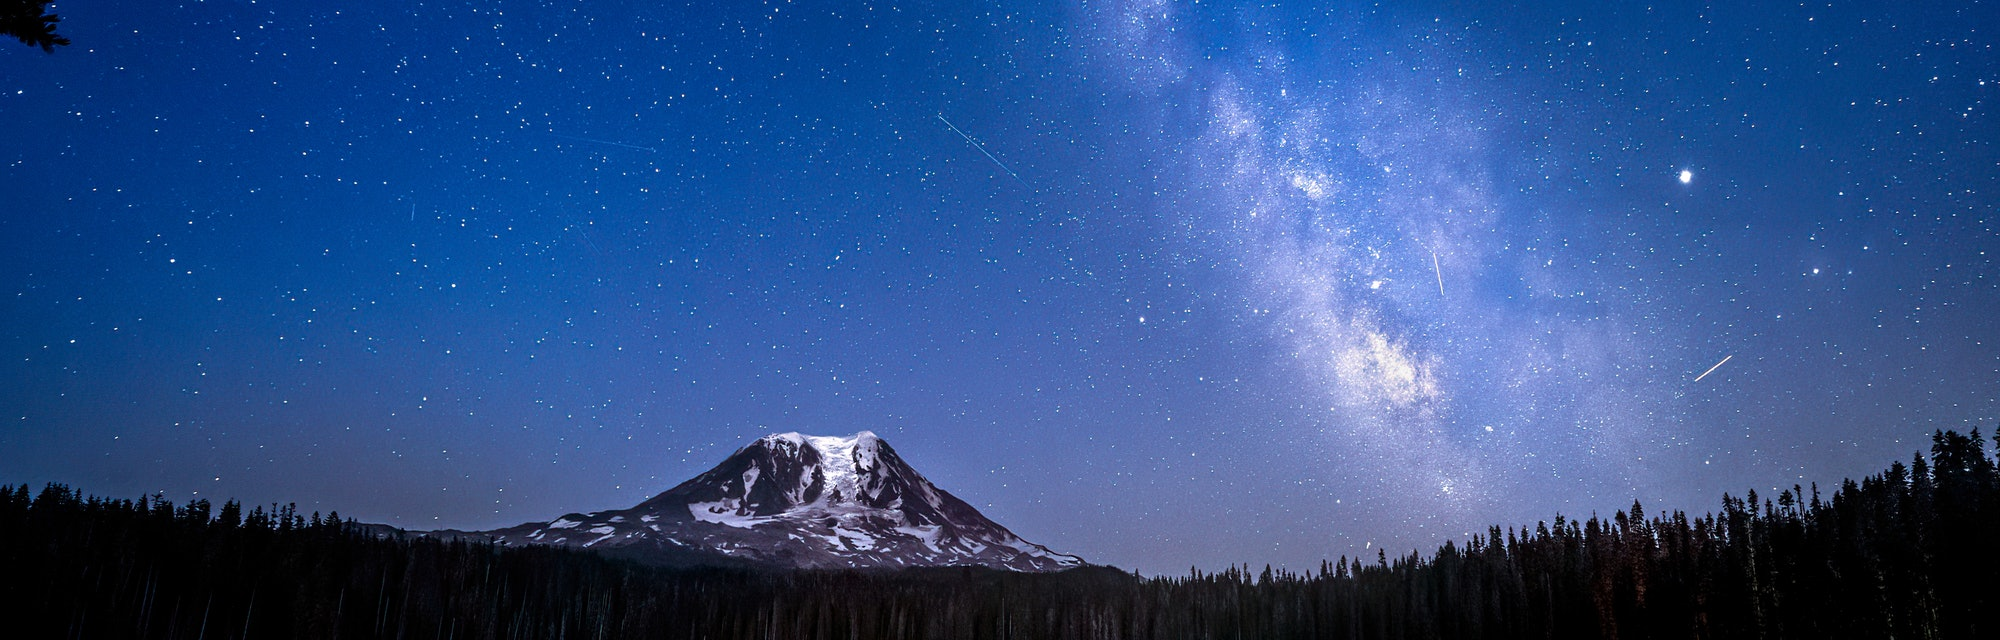 The Delta Aquariids meteor shower and Milky Way over Mt. Adams at Lake Takhlakh, Washington State